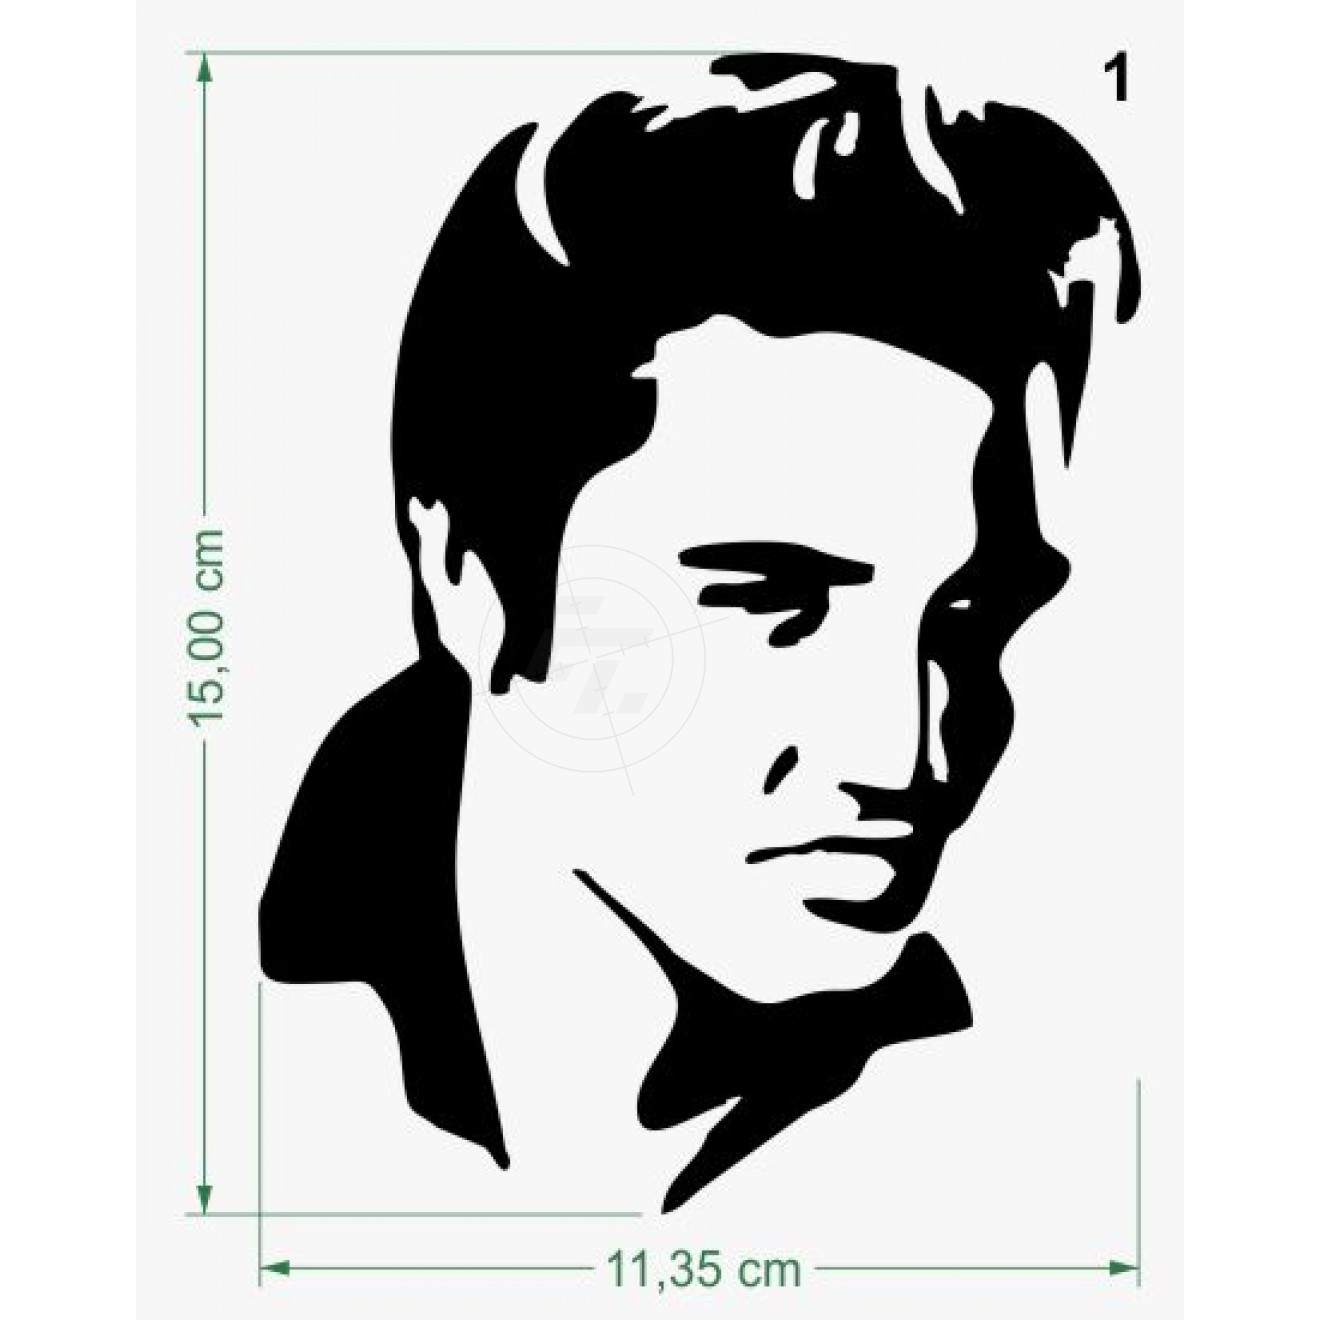 Collectionedwn Elvis Presley Silhouette together with Rca further Vector Of A Cartoon Elvis Impersonator Dog Dancing Outlined Coloring Page Drawing By Ron Leishman 16147 also Jakesalzarulostencil blogspot further Marilyn Monroe. on elvis presley art